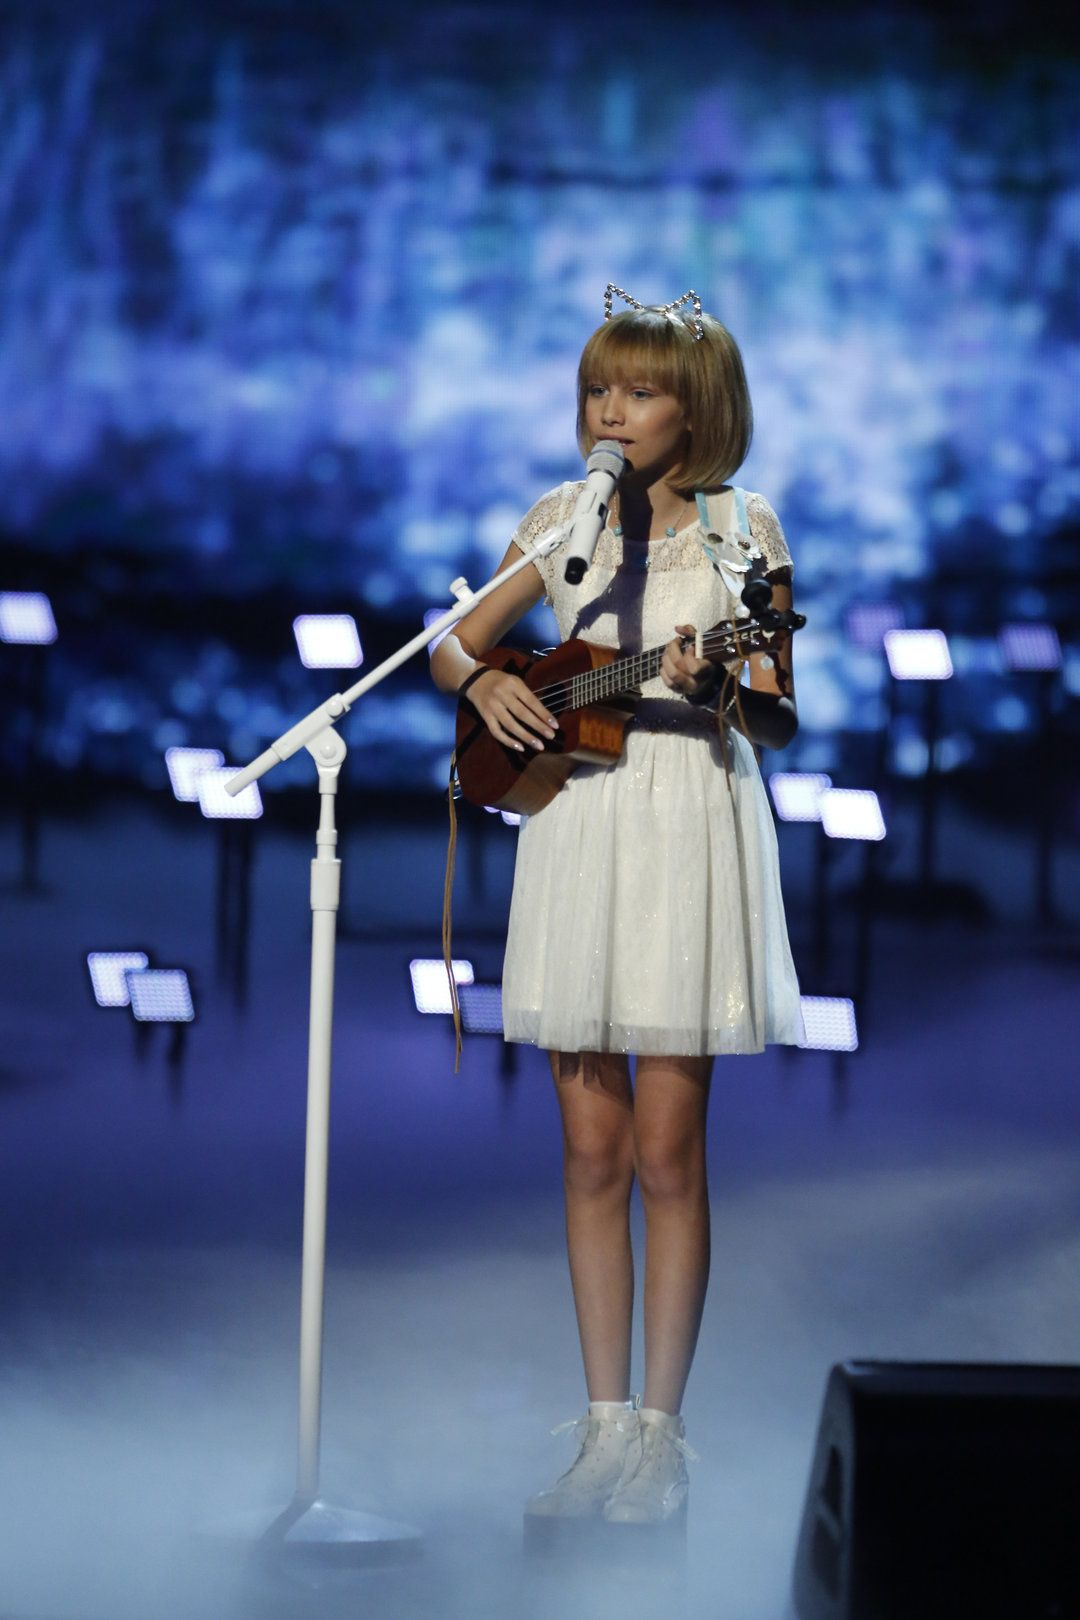 America S Got Talent Season 11 Grace Vanderwaal America S Got Talent America S Got Talent